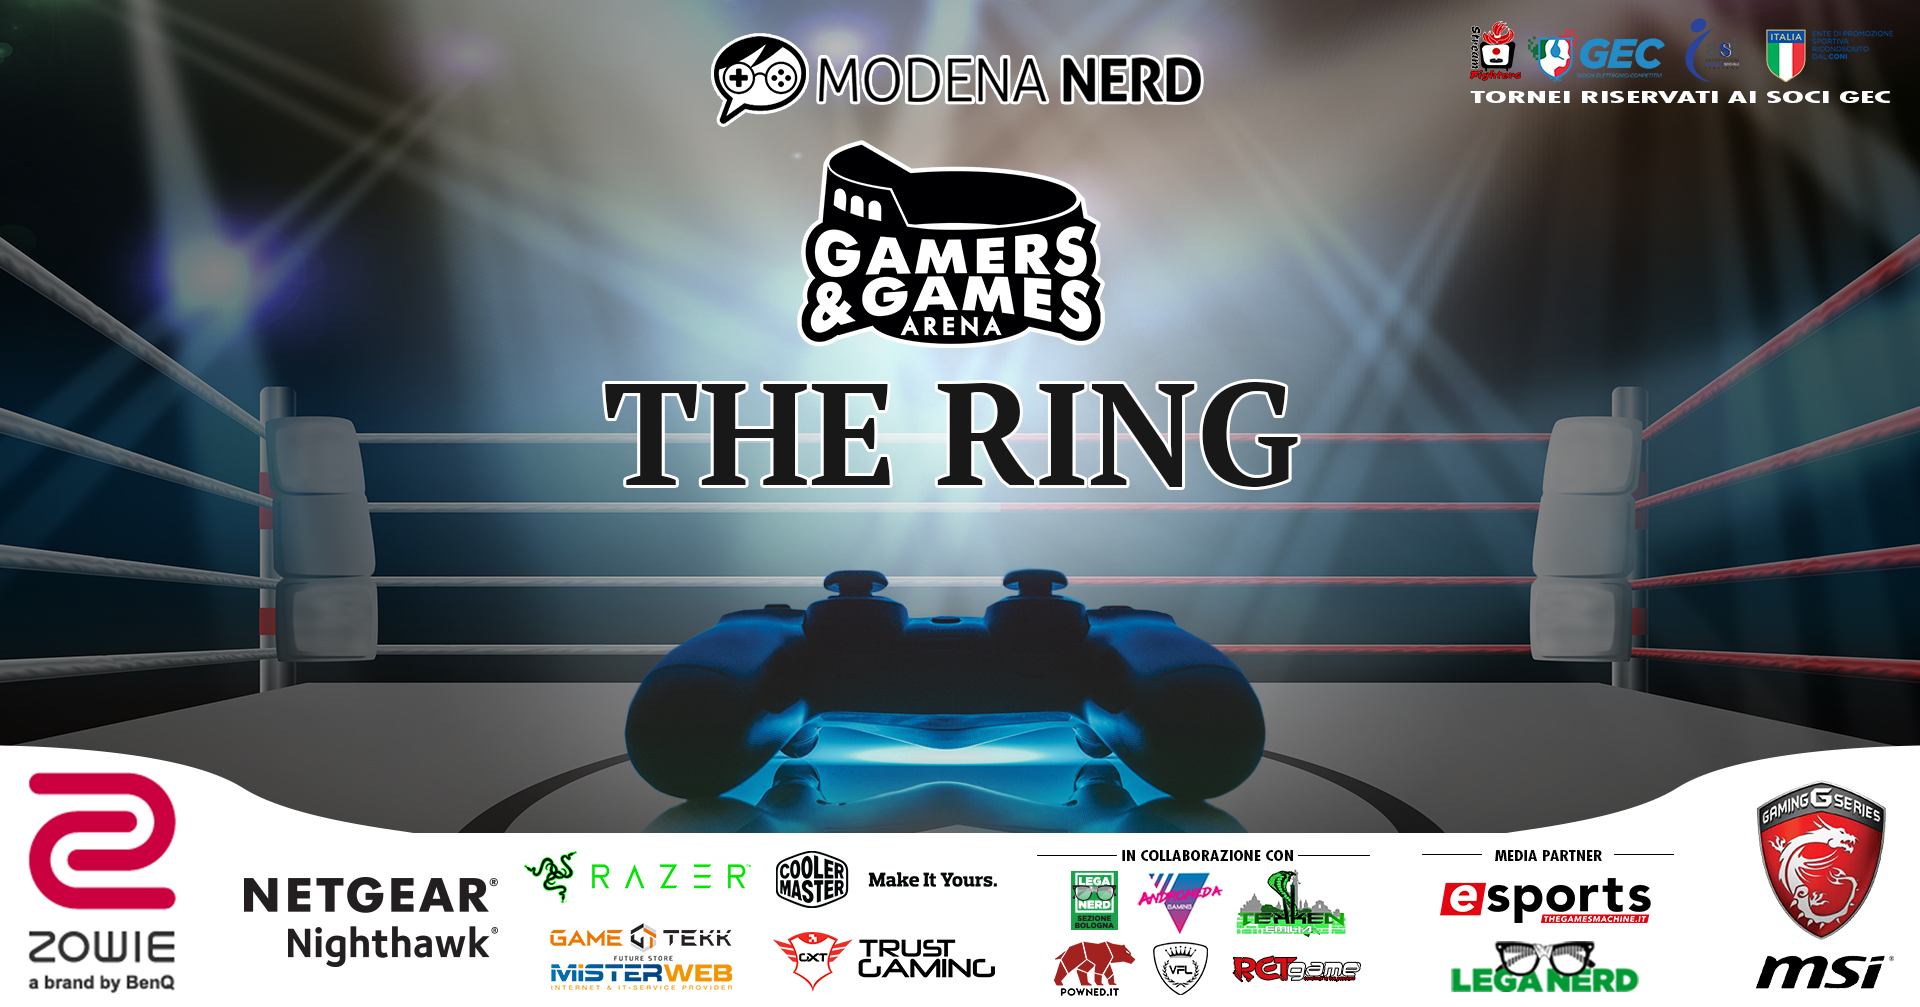 Gamers & Games: The Ring torna a Modena Nerd